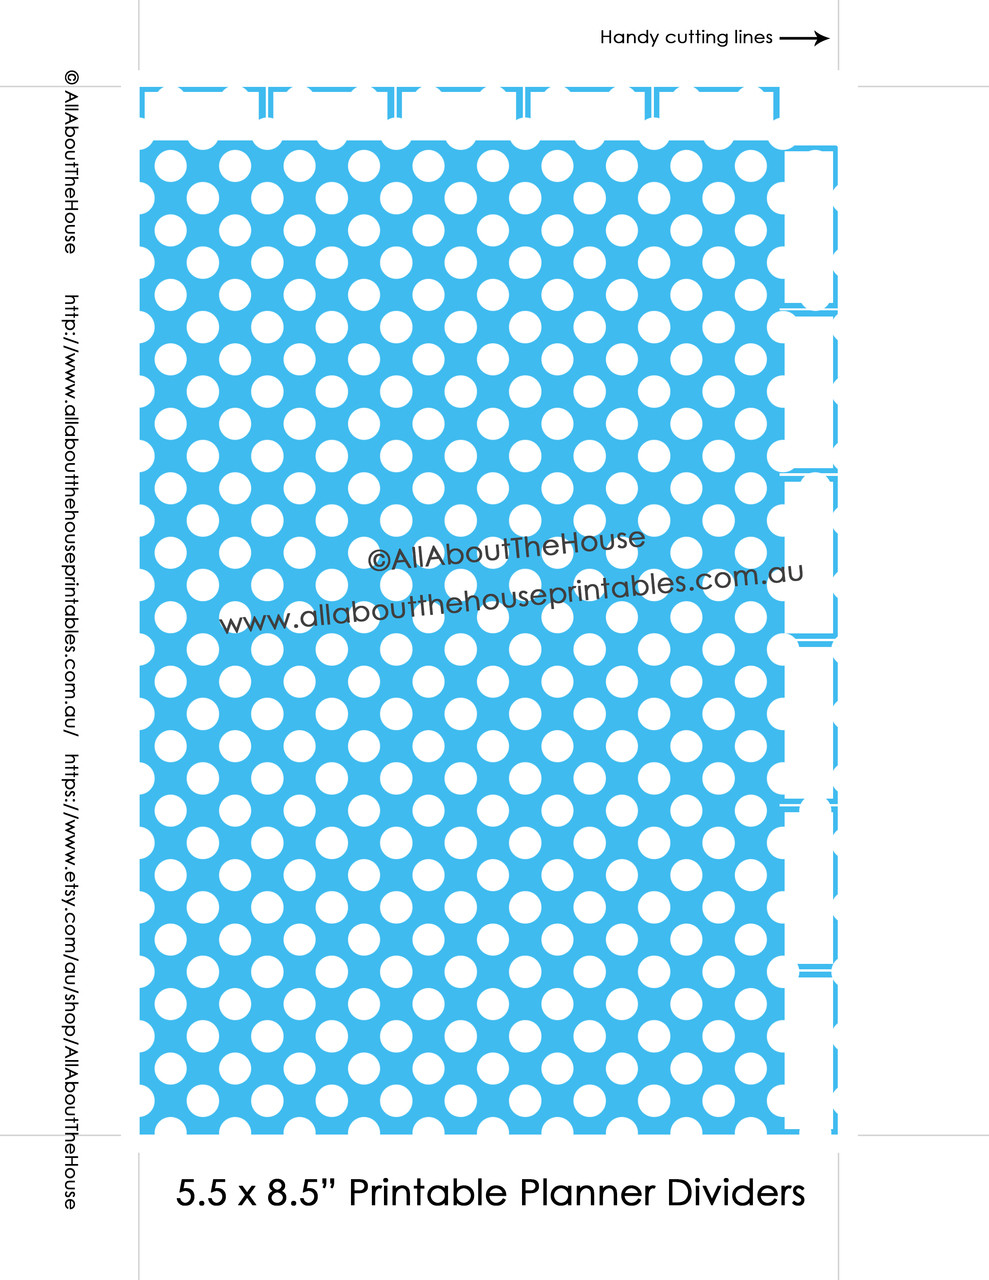 photo relating to Printable Binder Tabs called Planner Dividers 50 percent Dimension Tabbed A5 Junior Arc Printable Binder Handles  tabs - Fast Down load